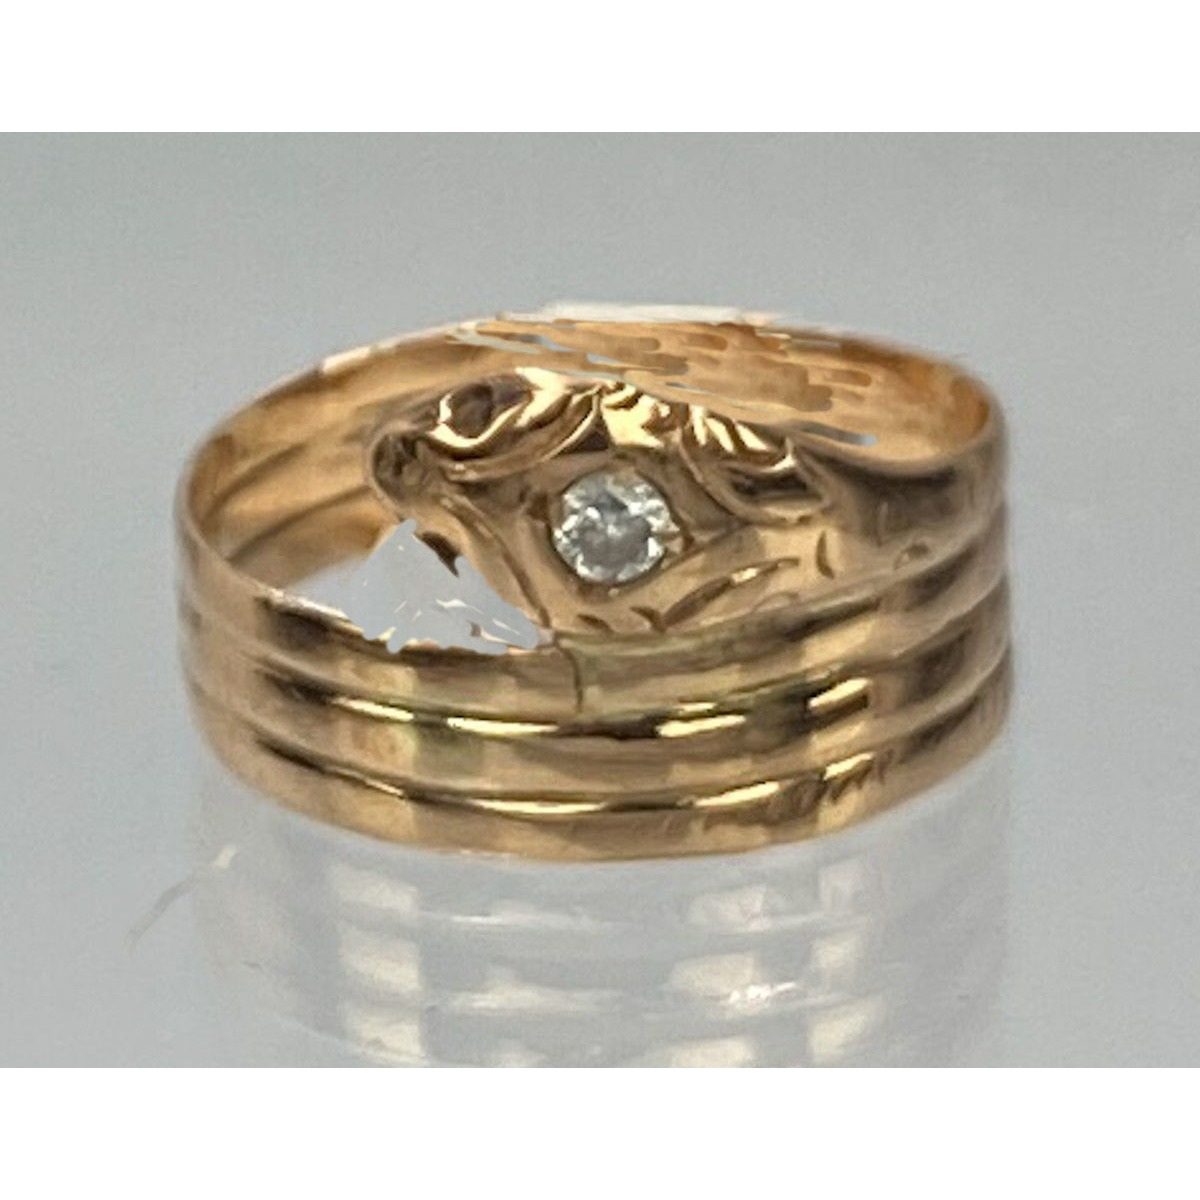 Coiled Snake Eternal Love Antique English Gold Ring Diamond Head